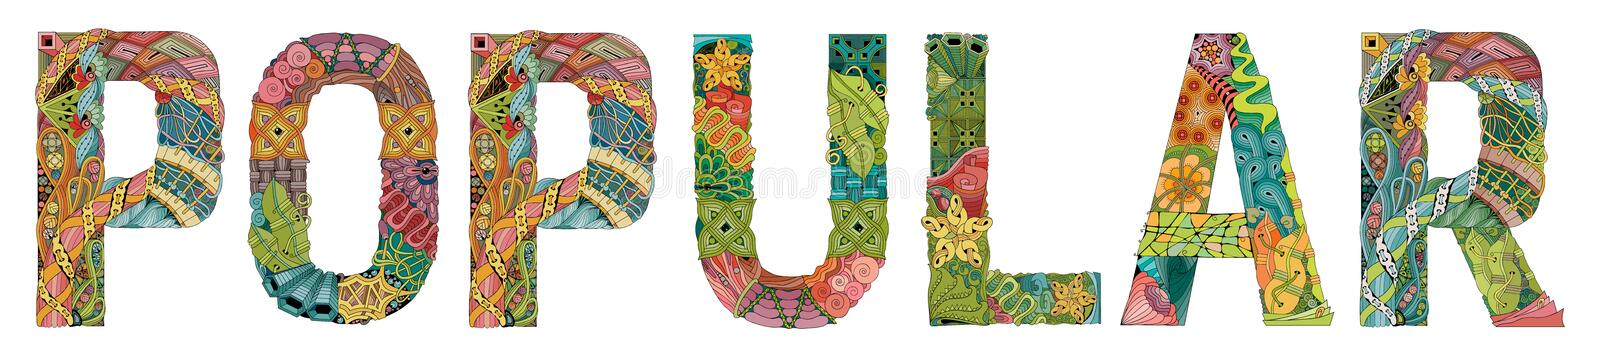 Word POPULAR. Vector decorative zentangle object for decoration royalty free illustration